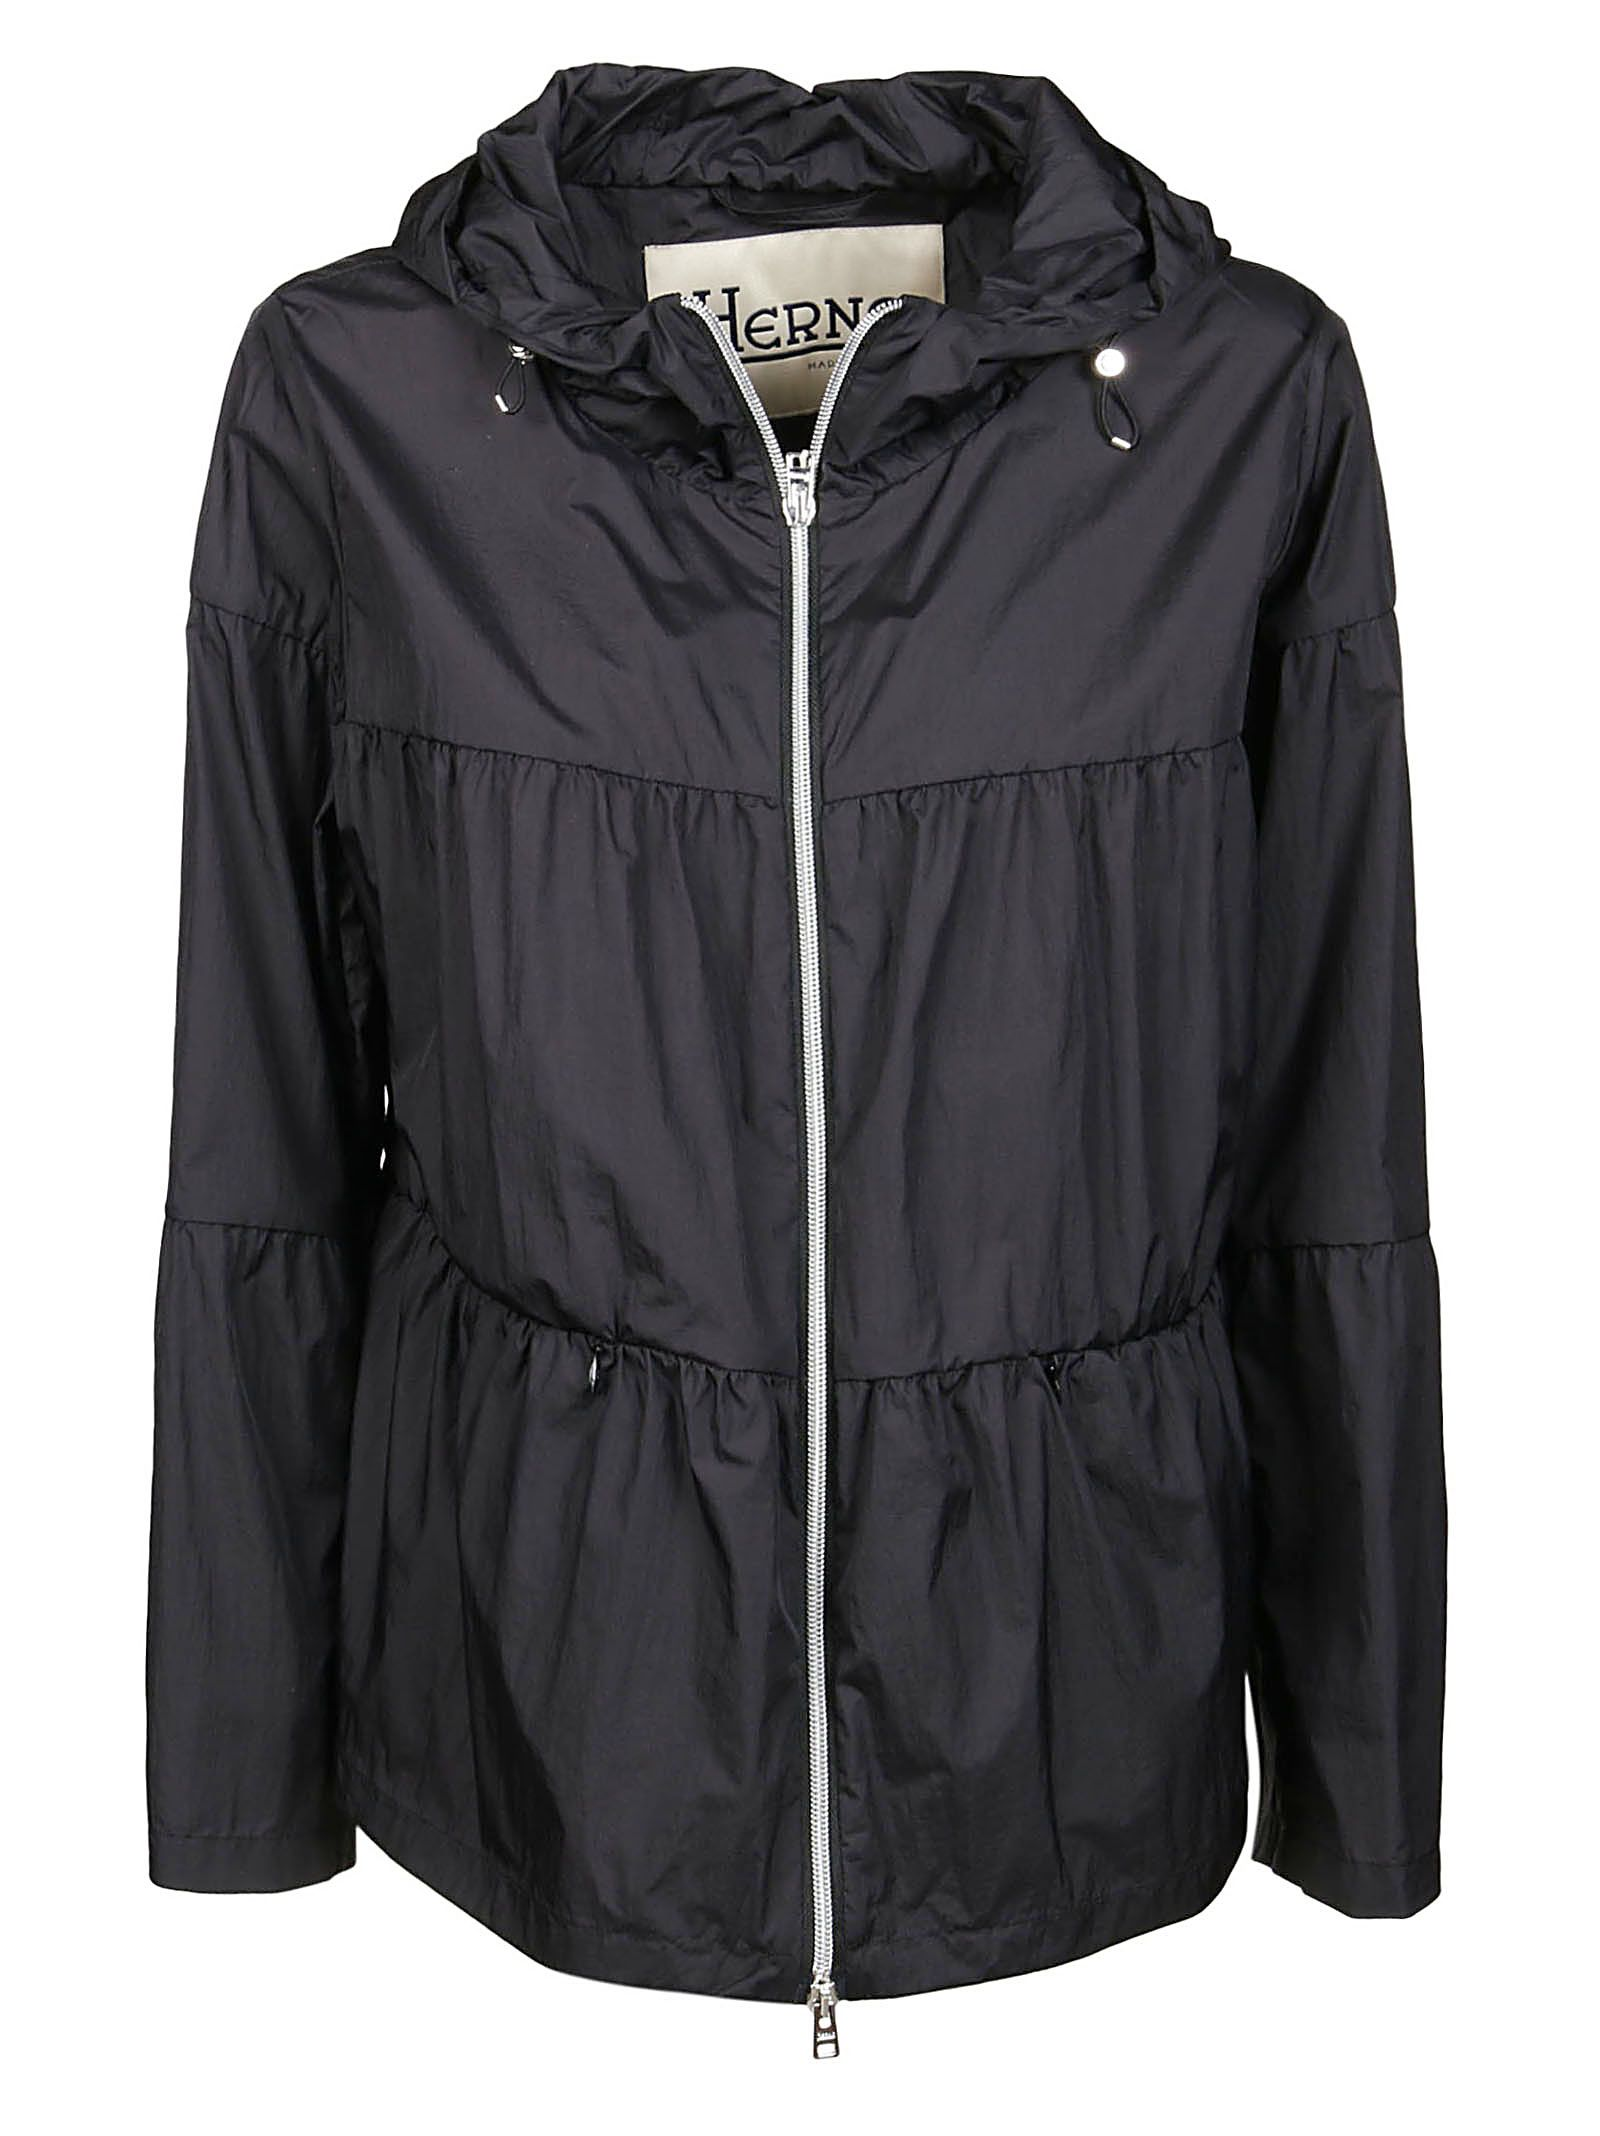 Herno Jackets HERNO WOMEN'S GI0127D123149300 BLACK OTHER MATERIALS OUTERWEAR JACKET